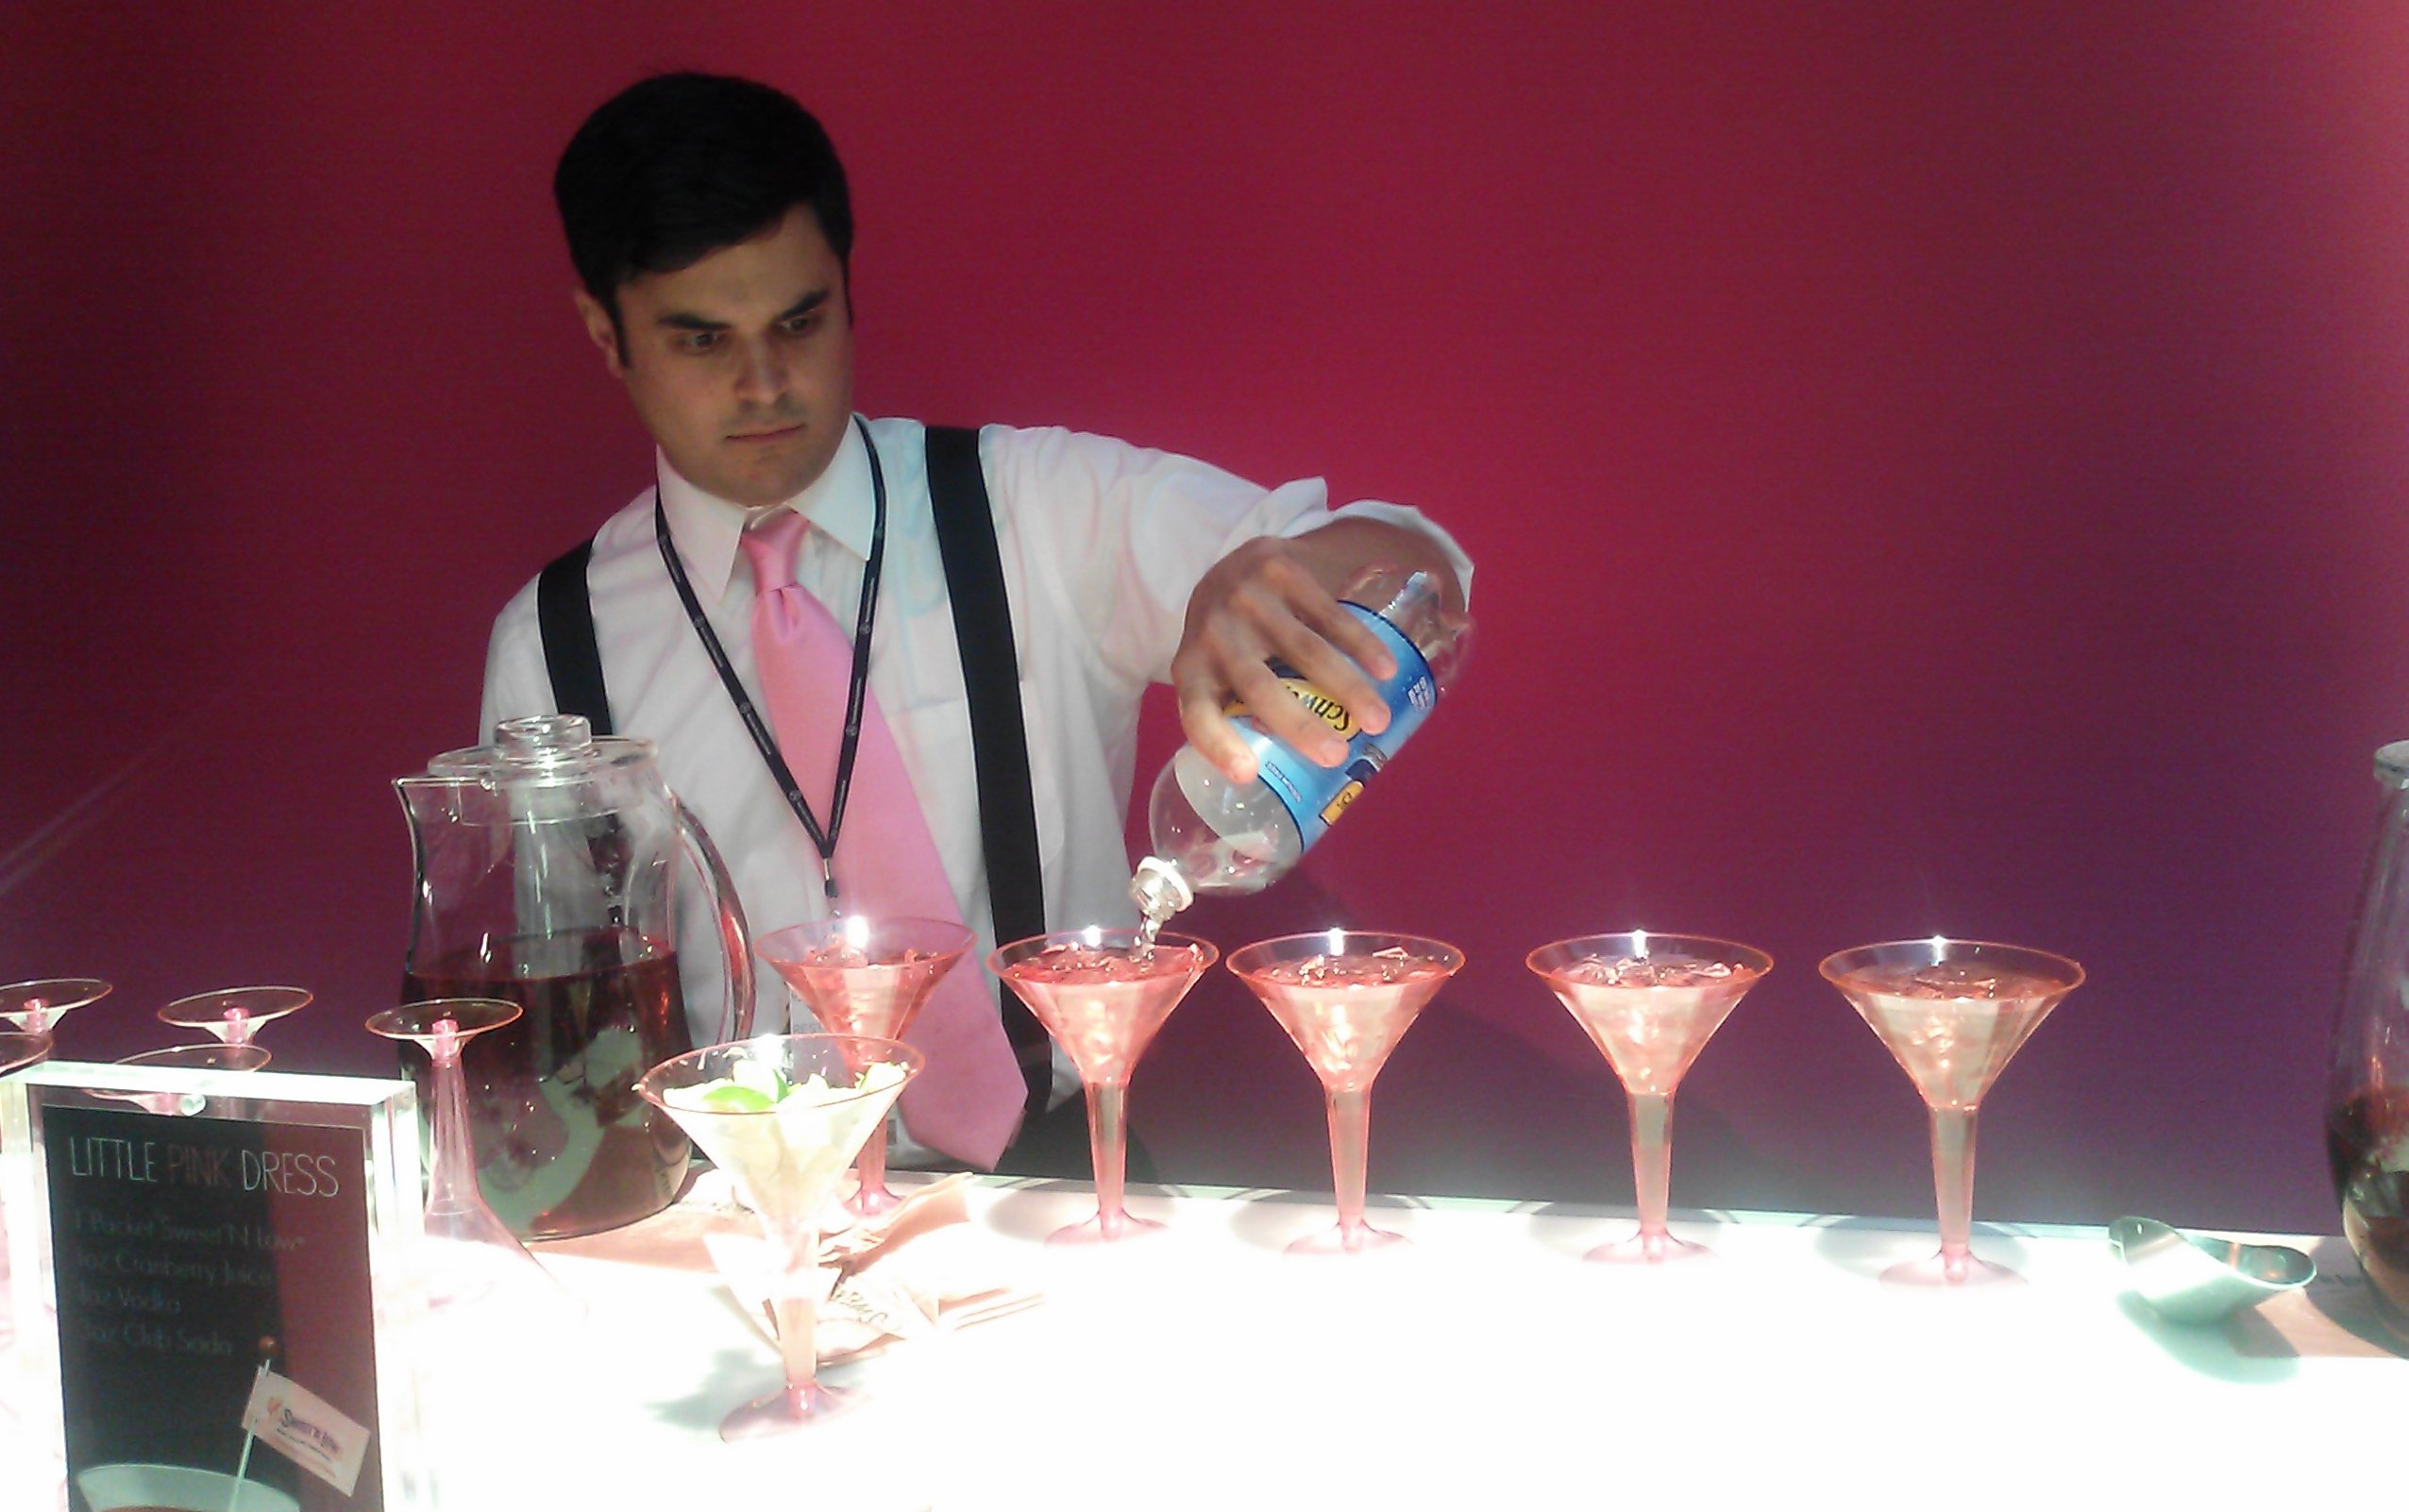 Complementary Cocktails Tinged with Sweet N Low, Lincoln Center, New York Fashion Week